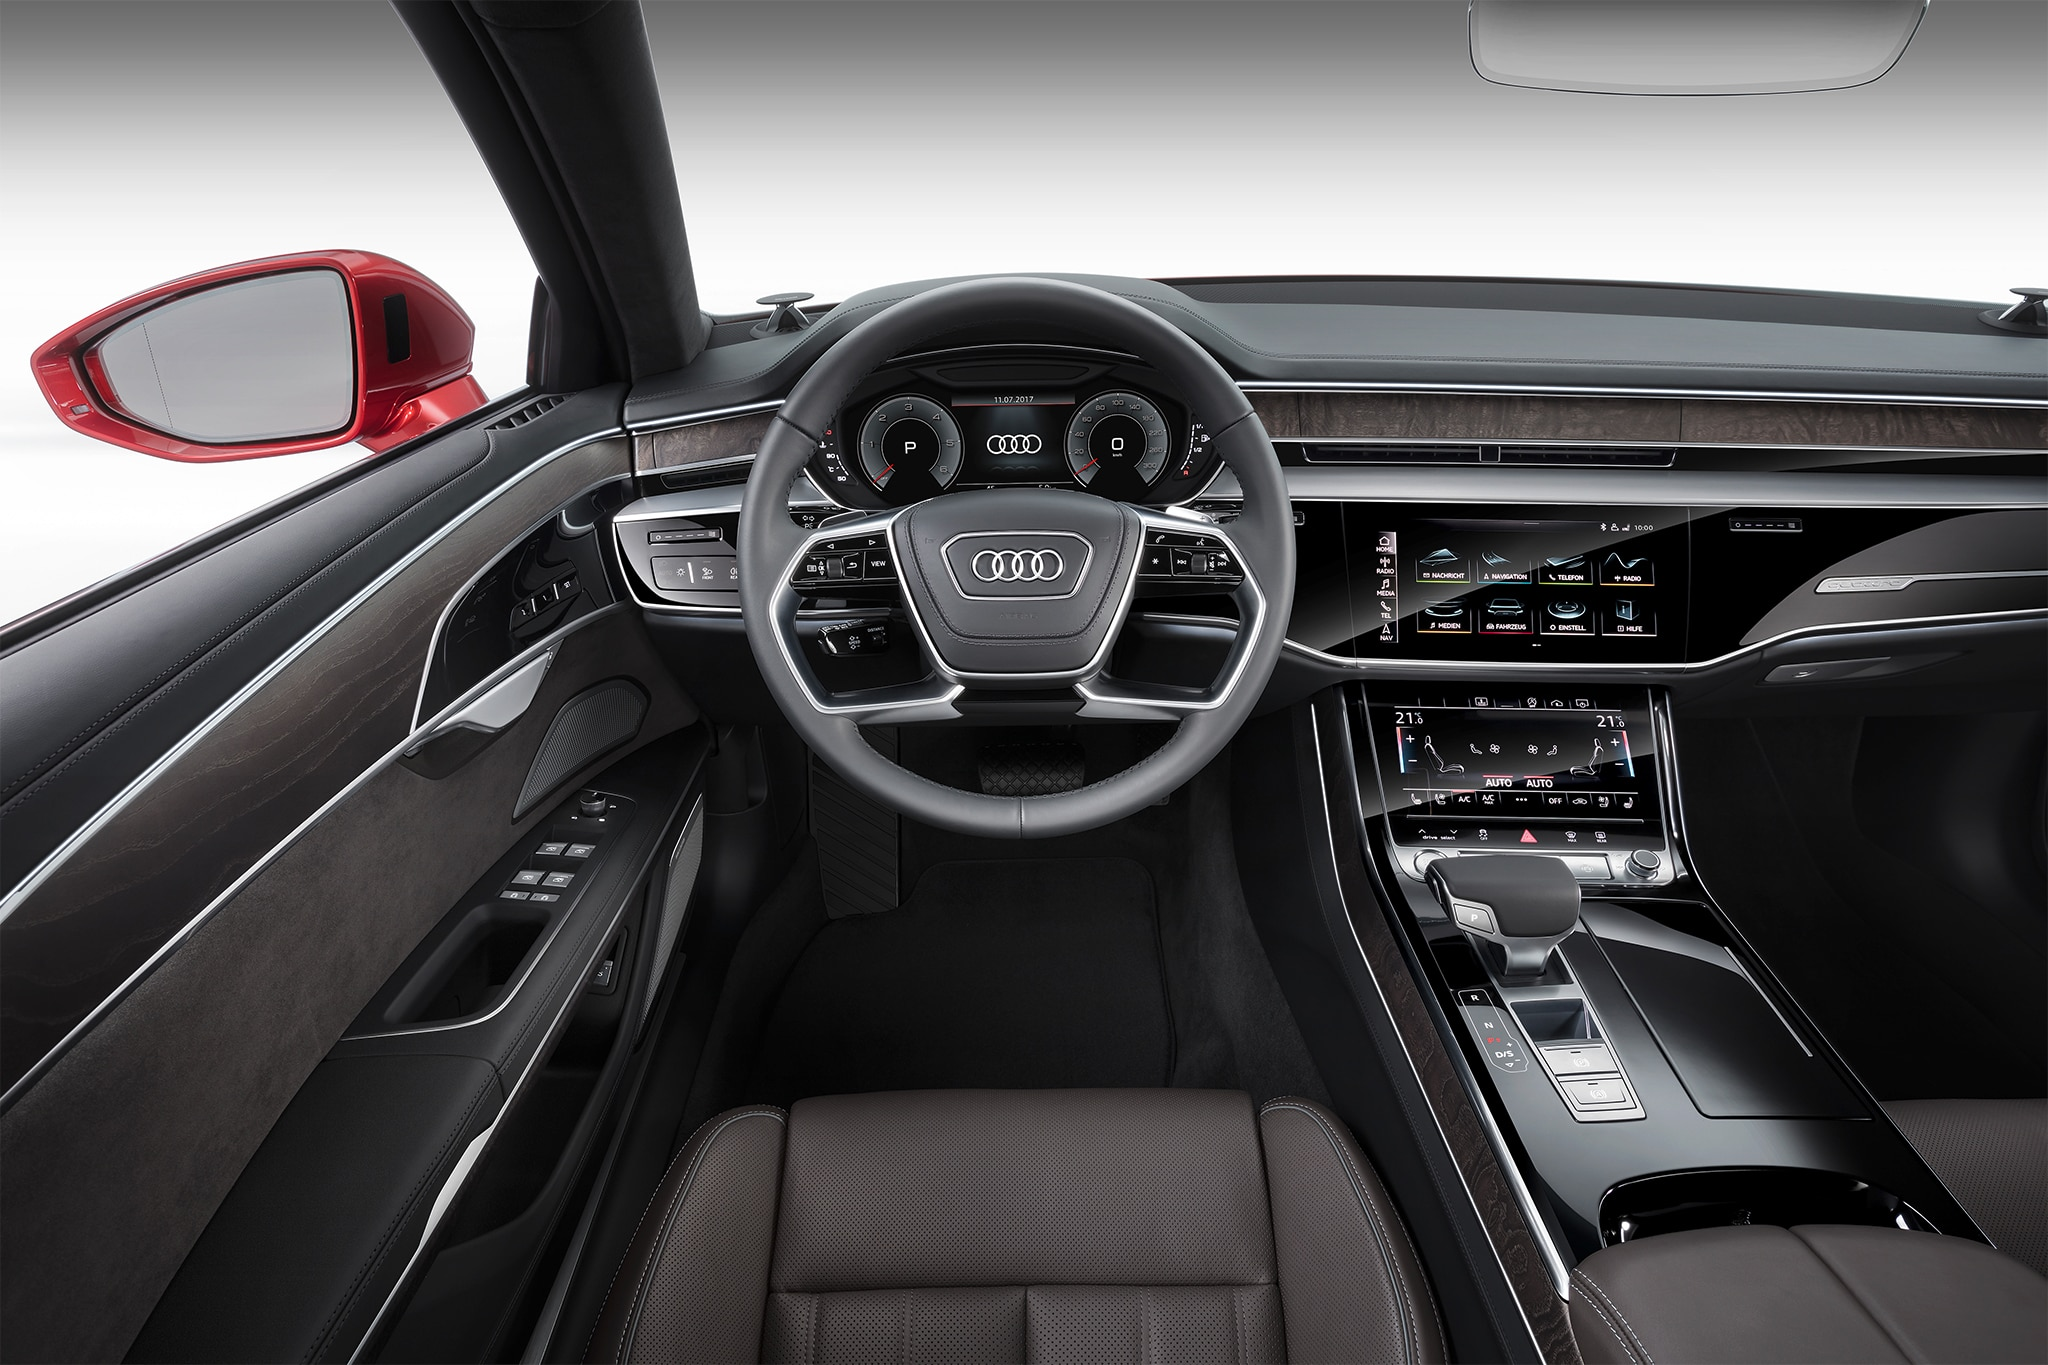 Seven Key Areas About The 2019 Audi A8 We Explored At The Audi